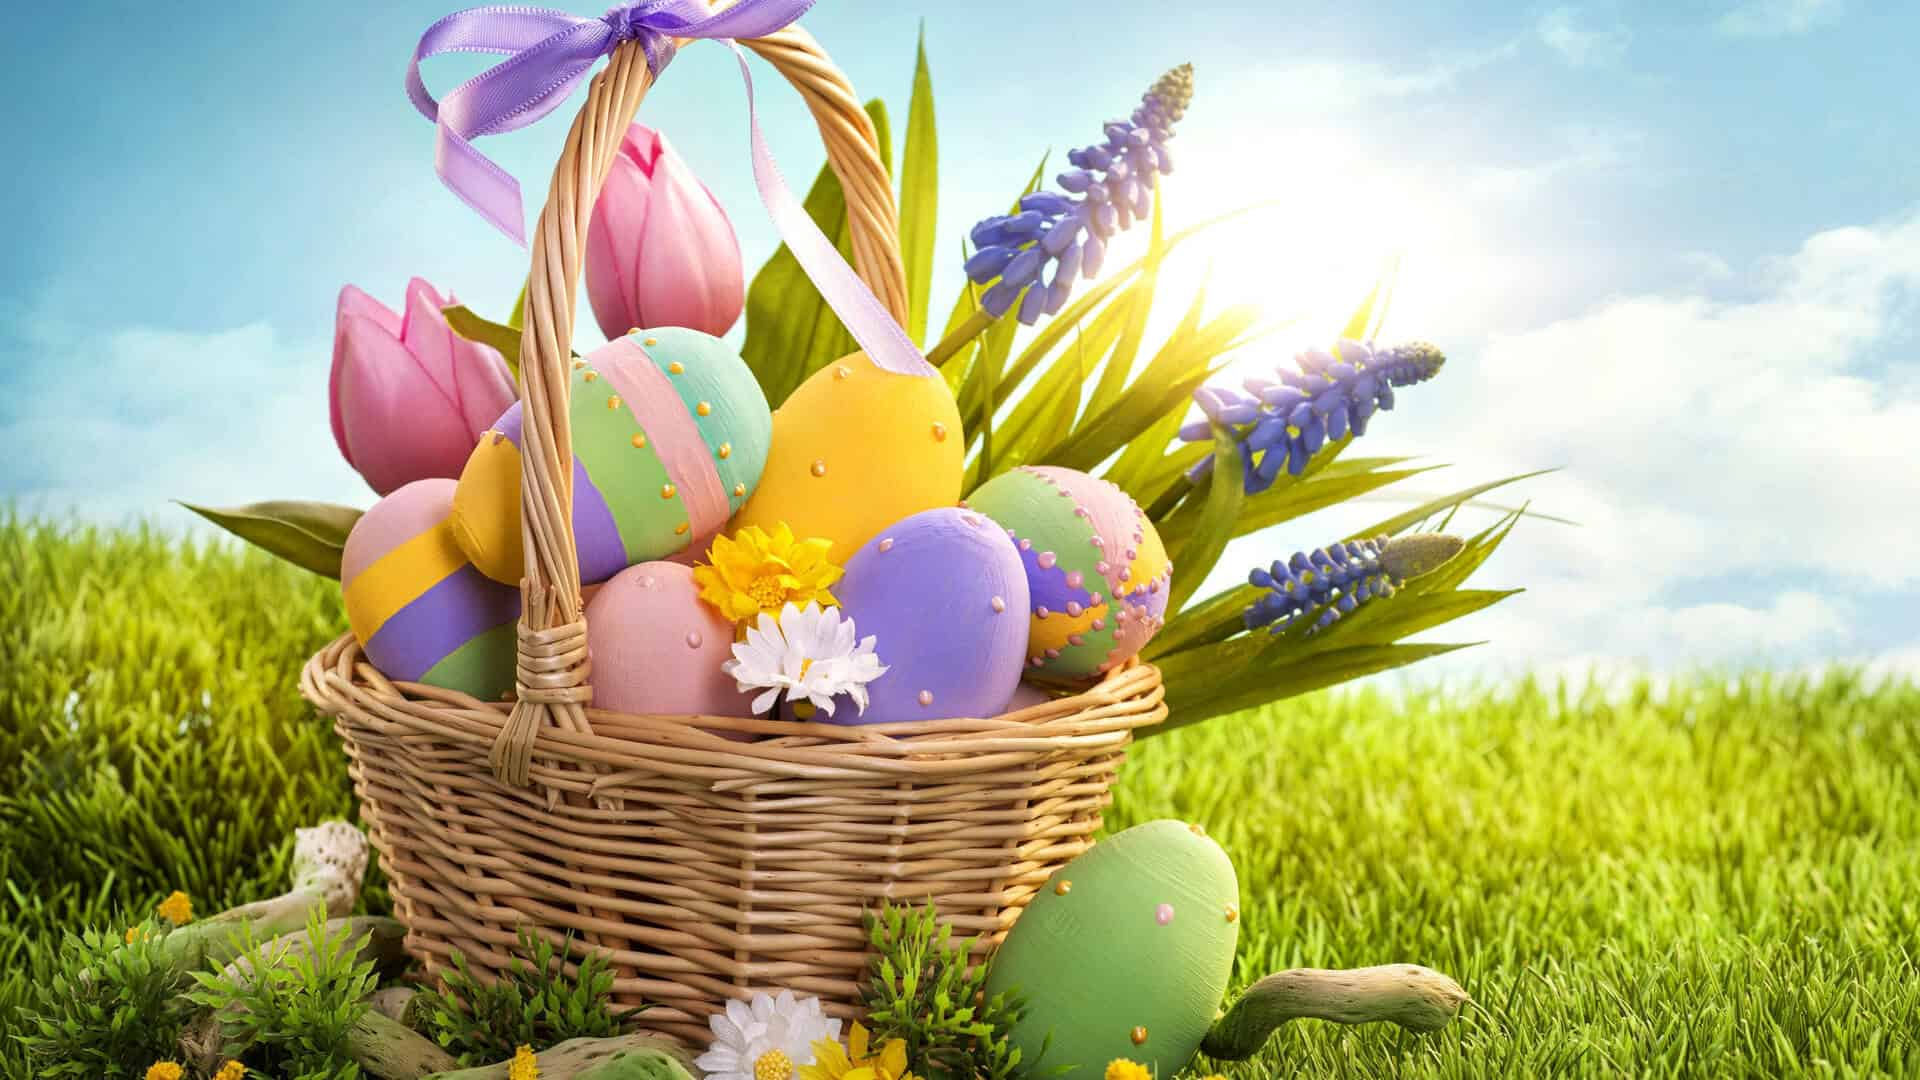 20 Best Easter Egg Wallpapers